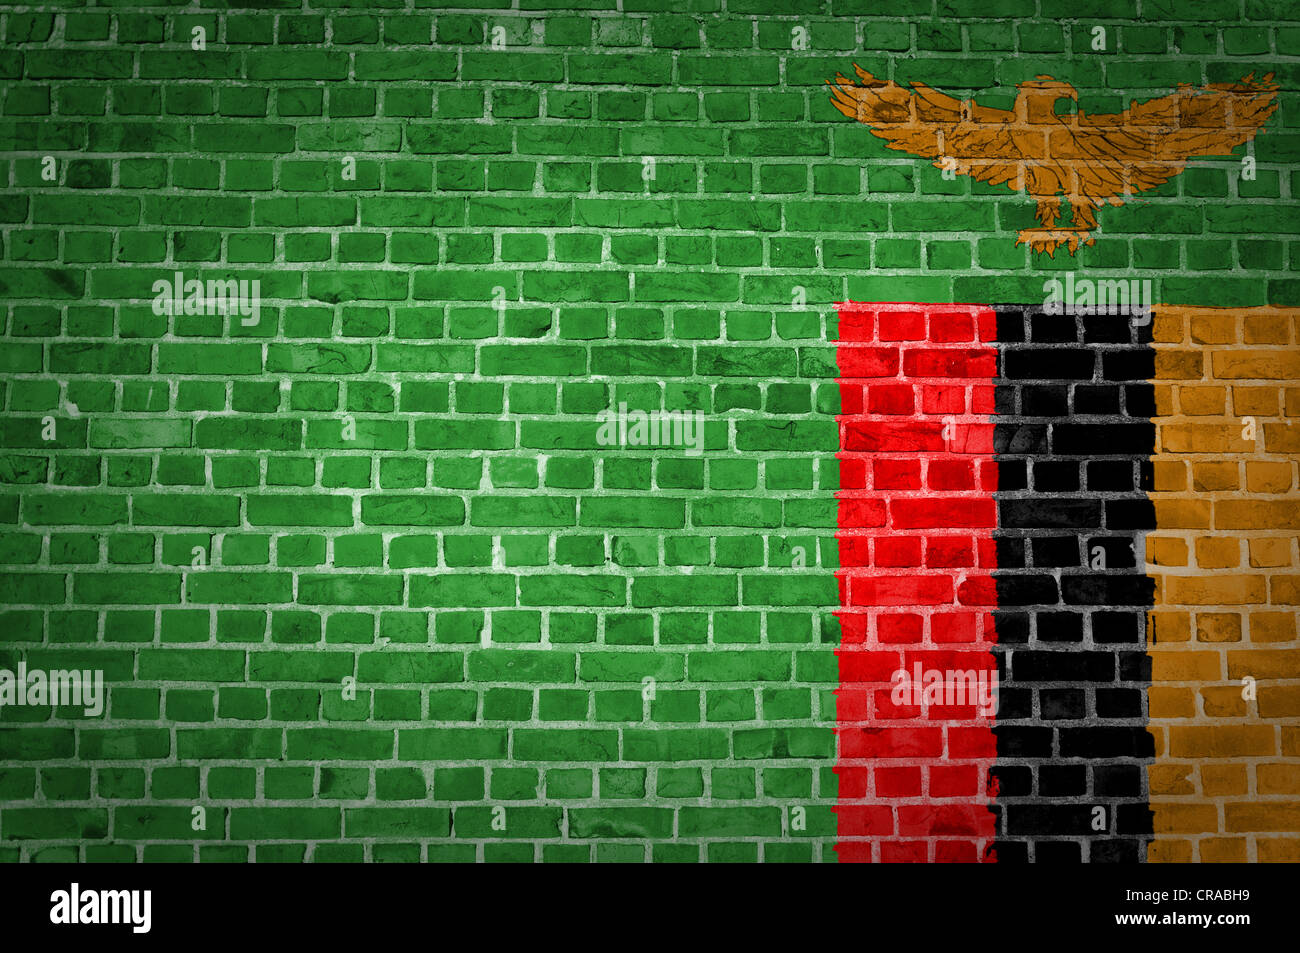 An image of the Zambia flag painted on a brick wall in an urban location - Stock Image